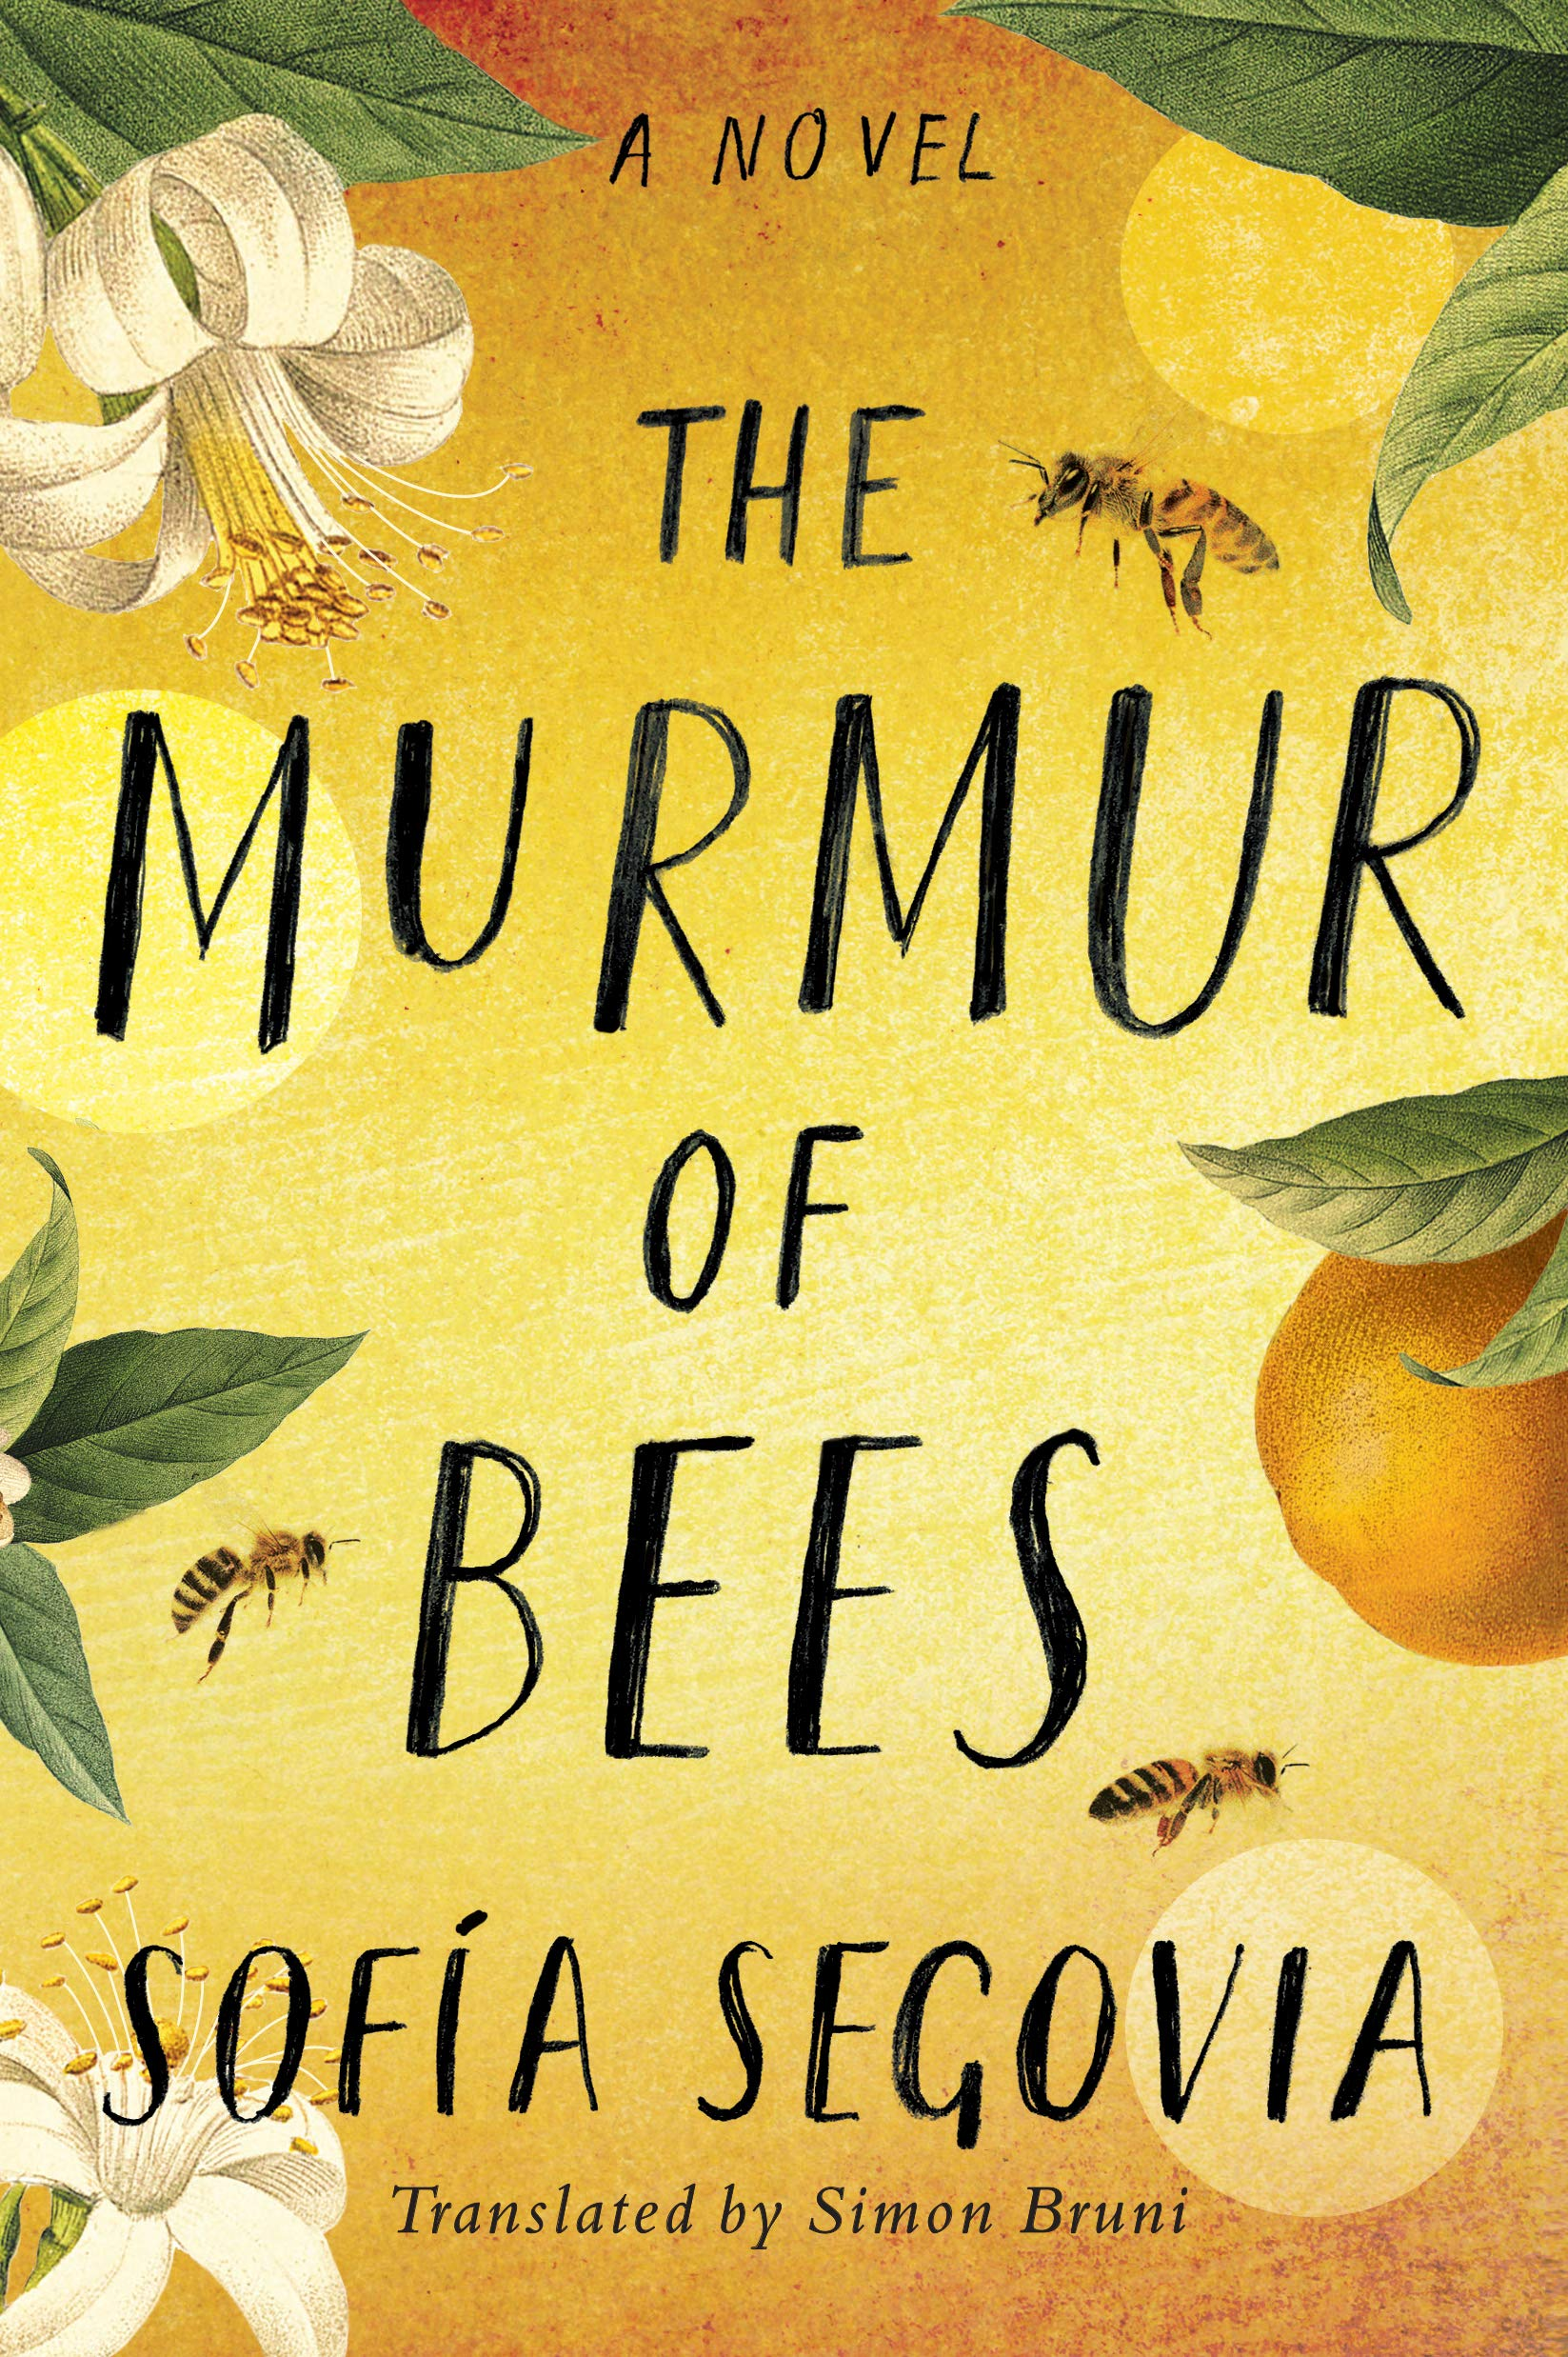 Cover of The Murmur of Bees, by Sofia Segovia, translated by Simon Bruni